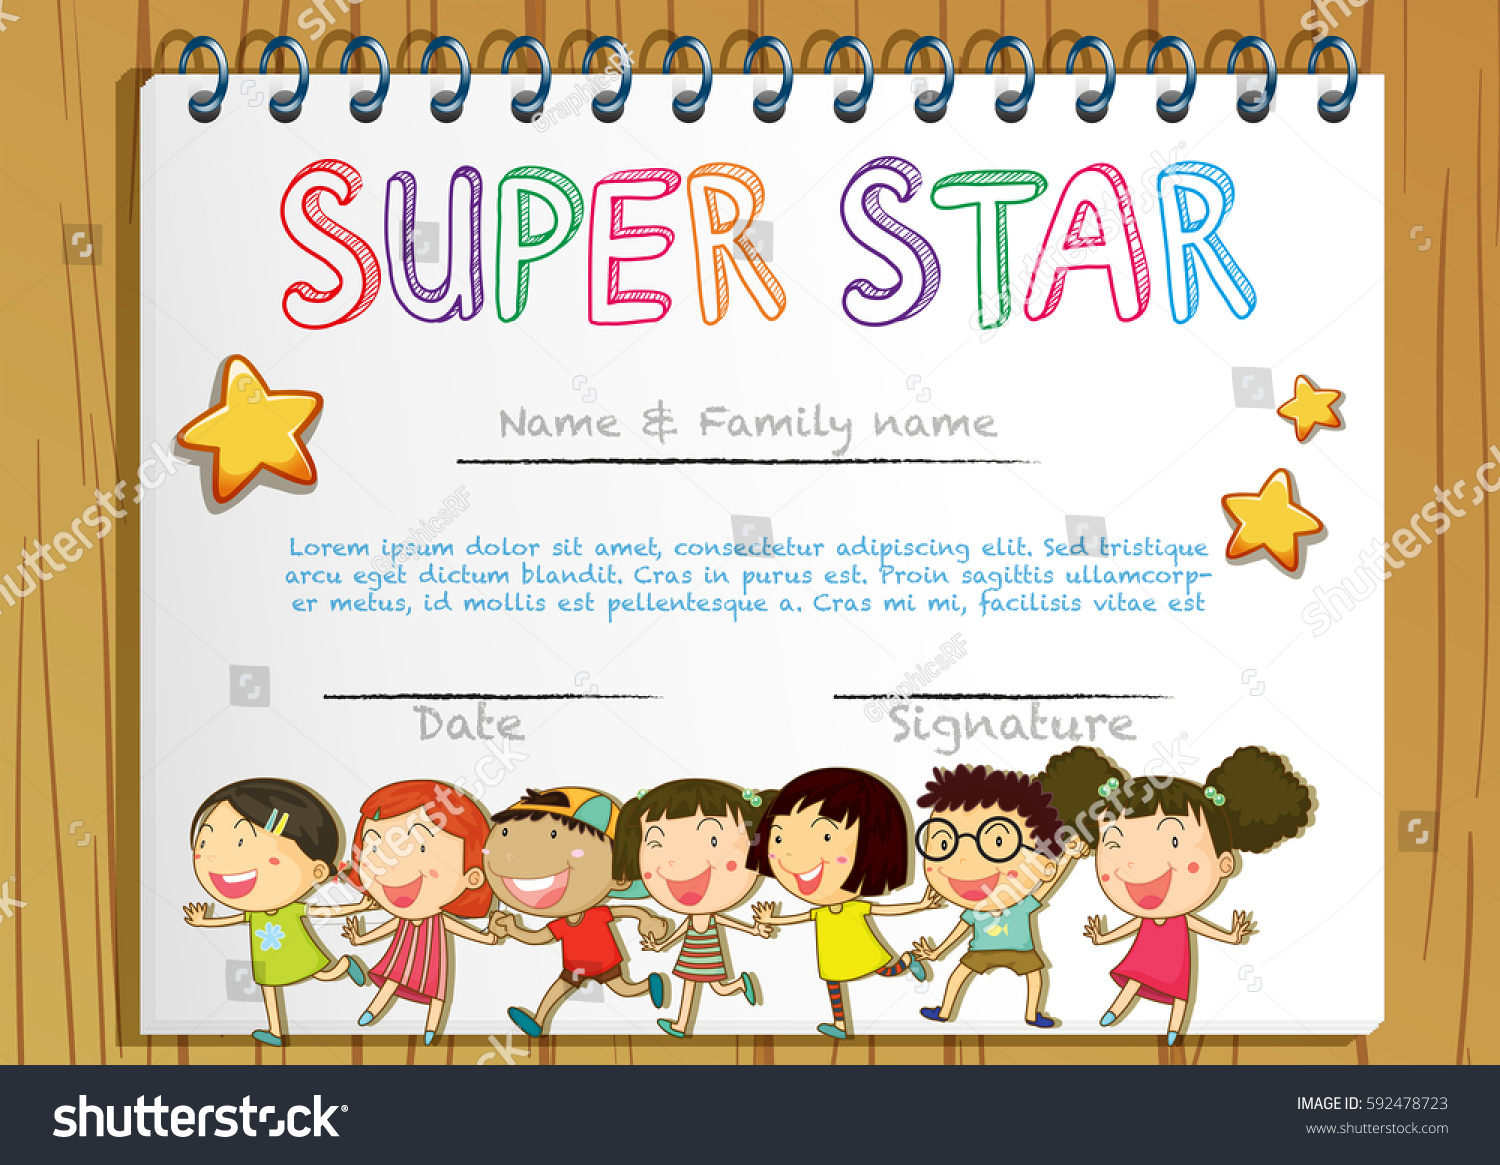 Star certificate template exolabogados star certificate template xflitez Choice Image